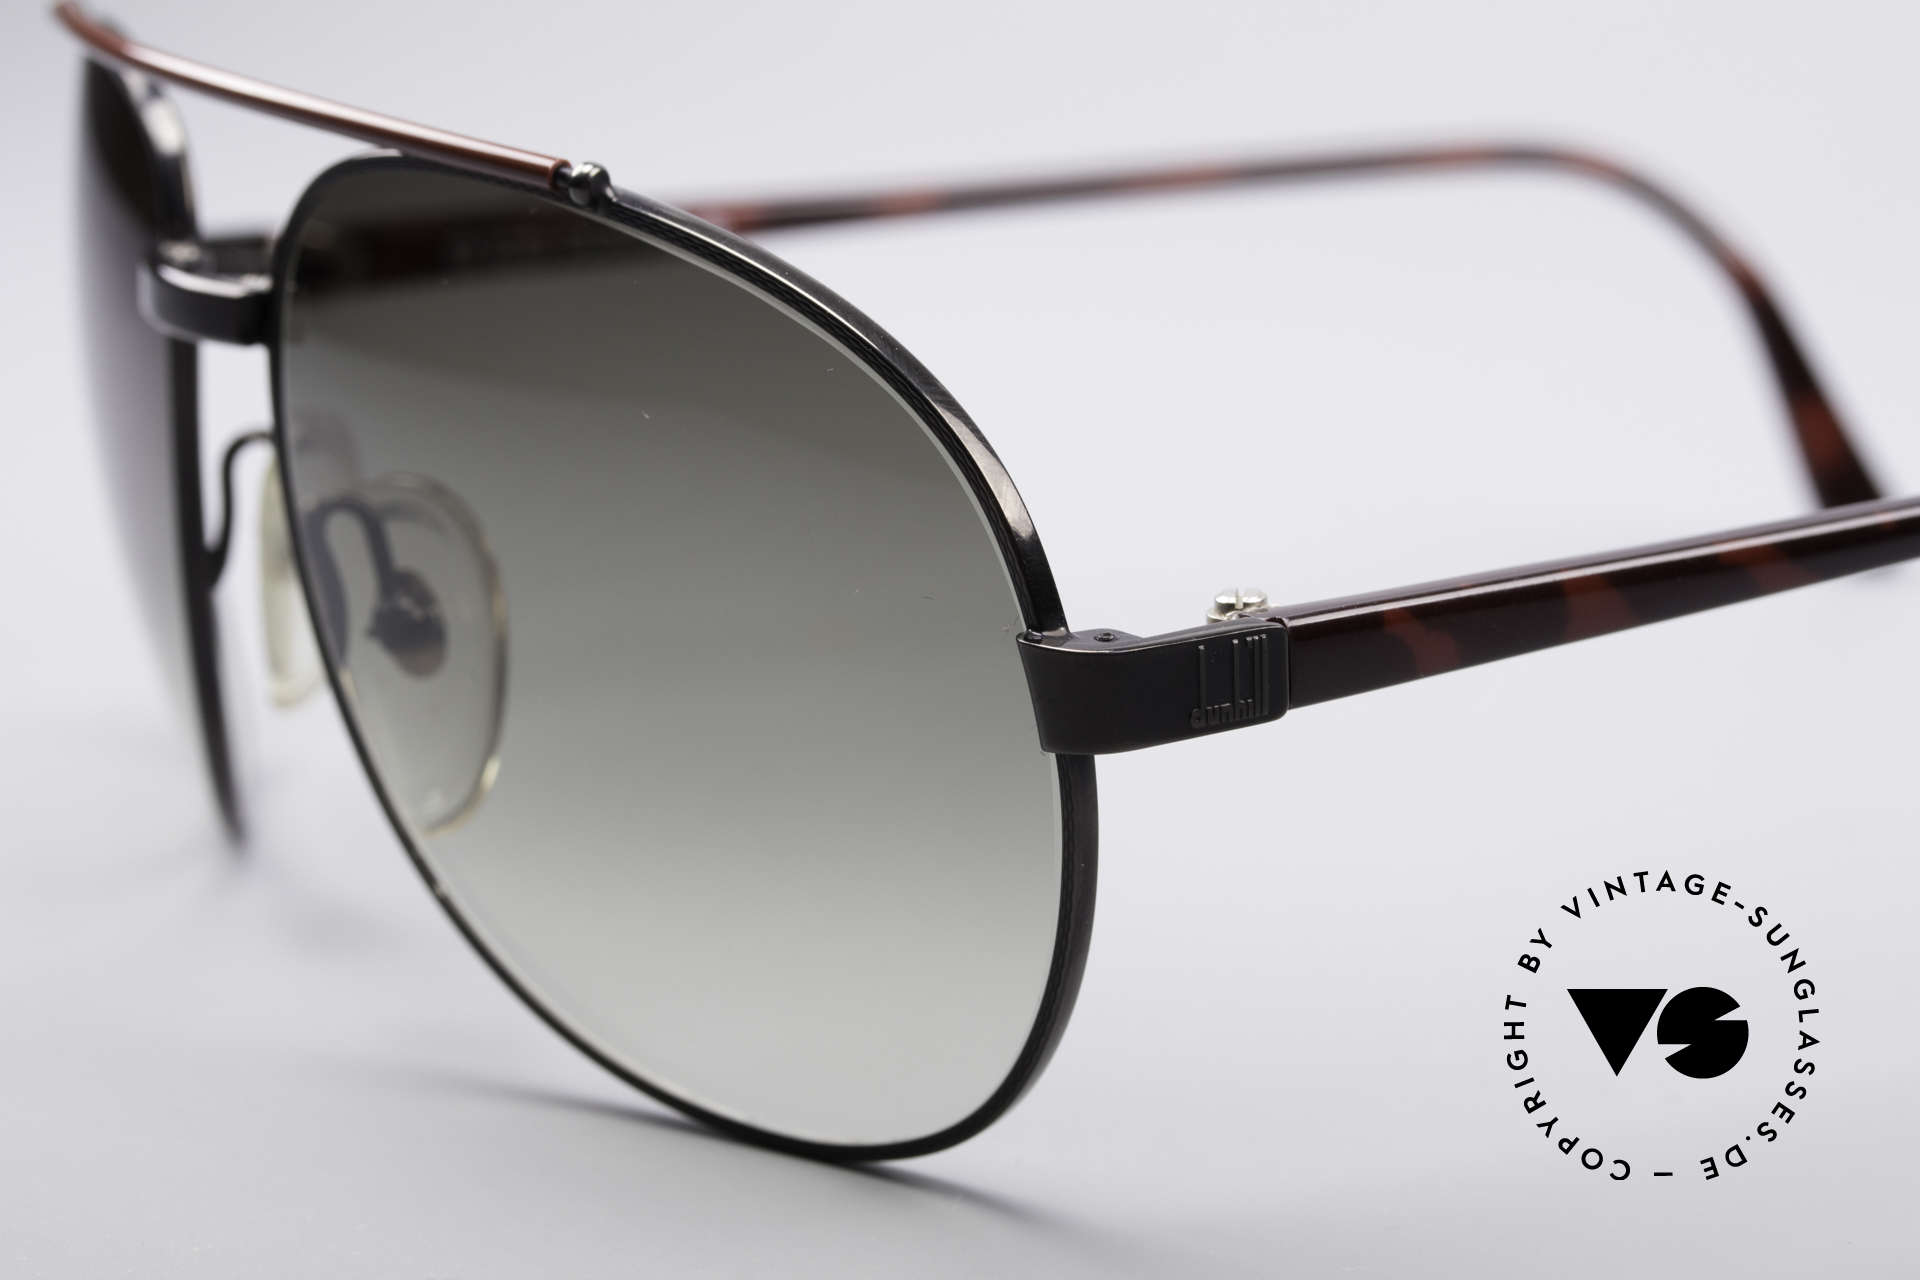 Dunhill 6070 90's Luxury Shades, tortoise-shell-bordeaux appliqué & gray lenses, Made for Men